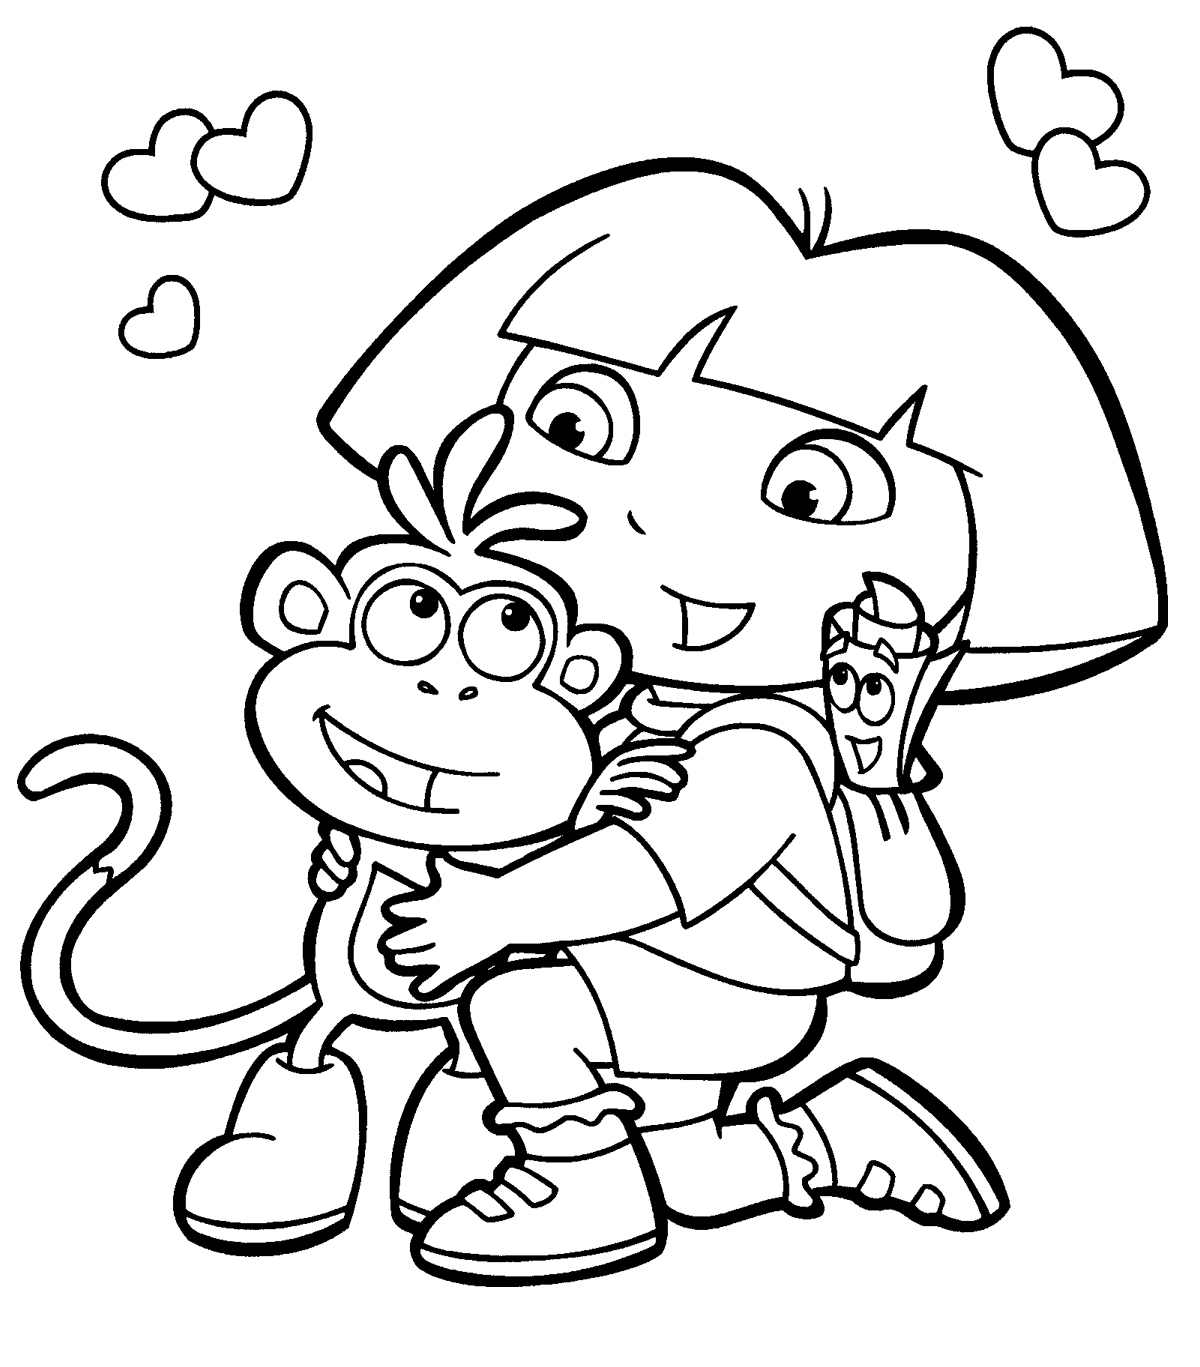 Nick Jr Coloring Pages (17) | Coloring Kids